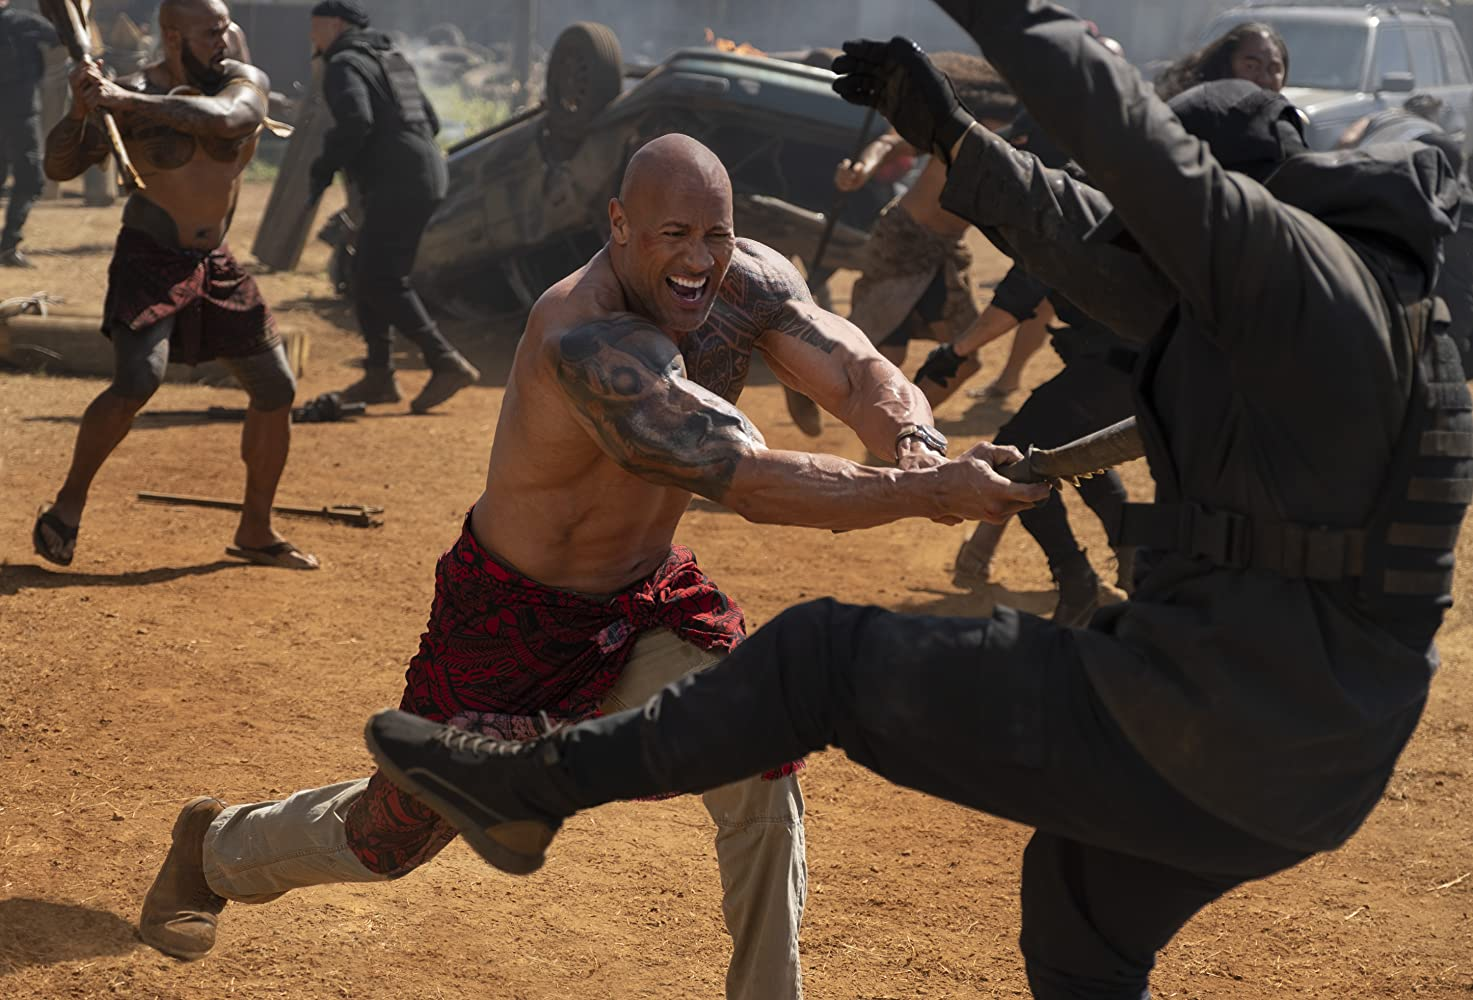 Dwayne Johnson in Fast & Furious Presents: Hobbs & Shaw (2019)